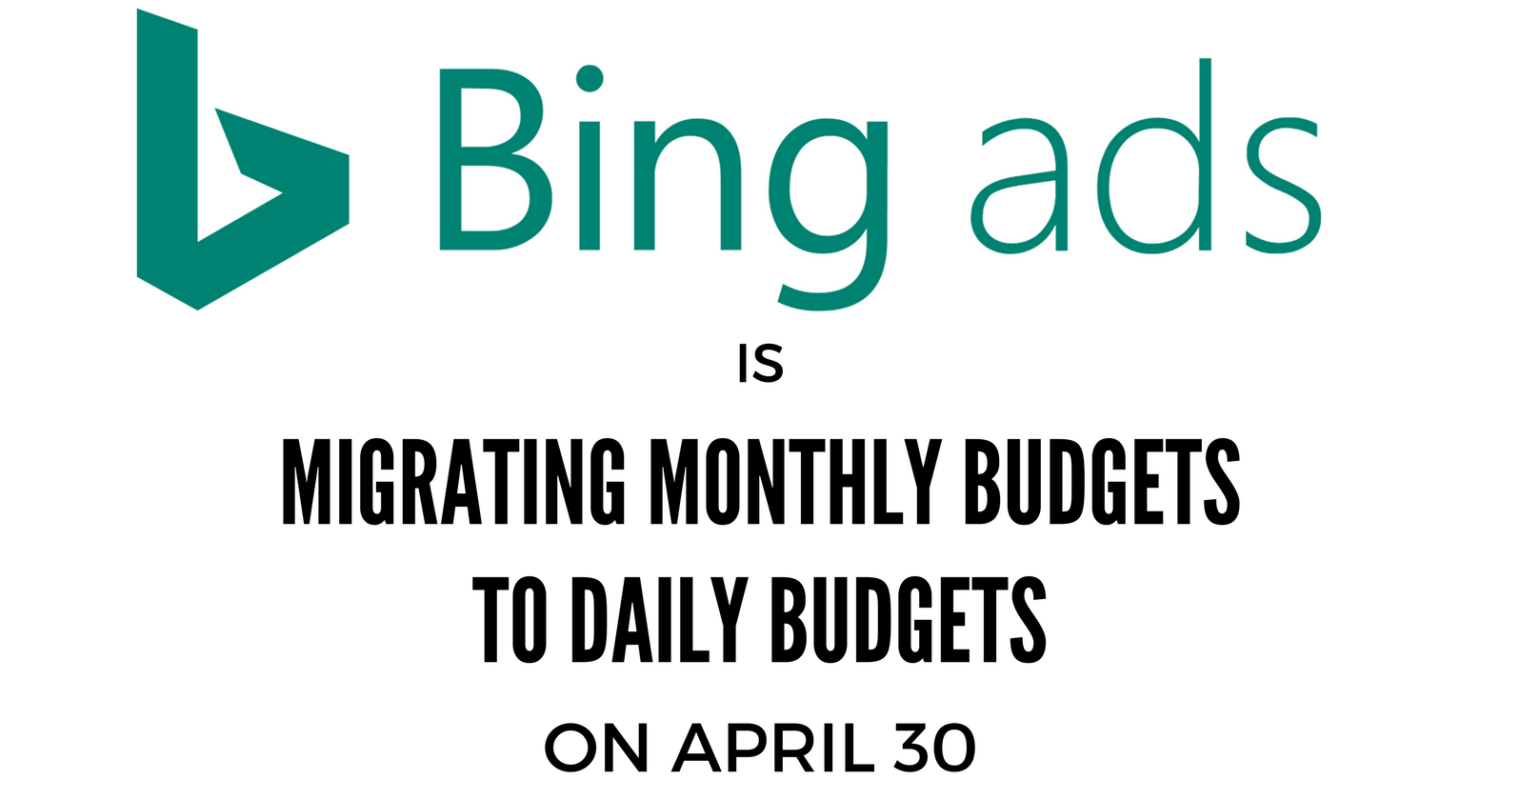 Bing Ads Will Stop Supporting Monthly Budgets as of April 30